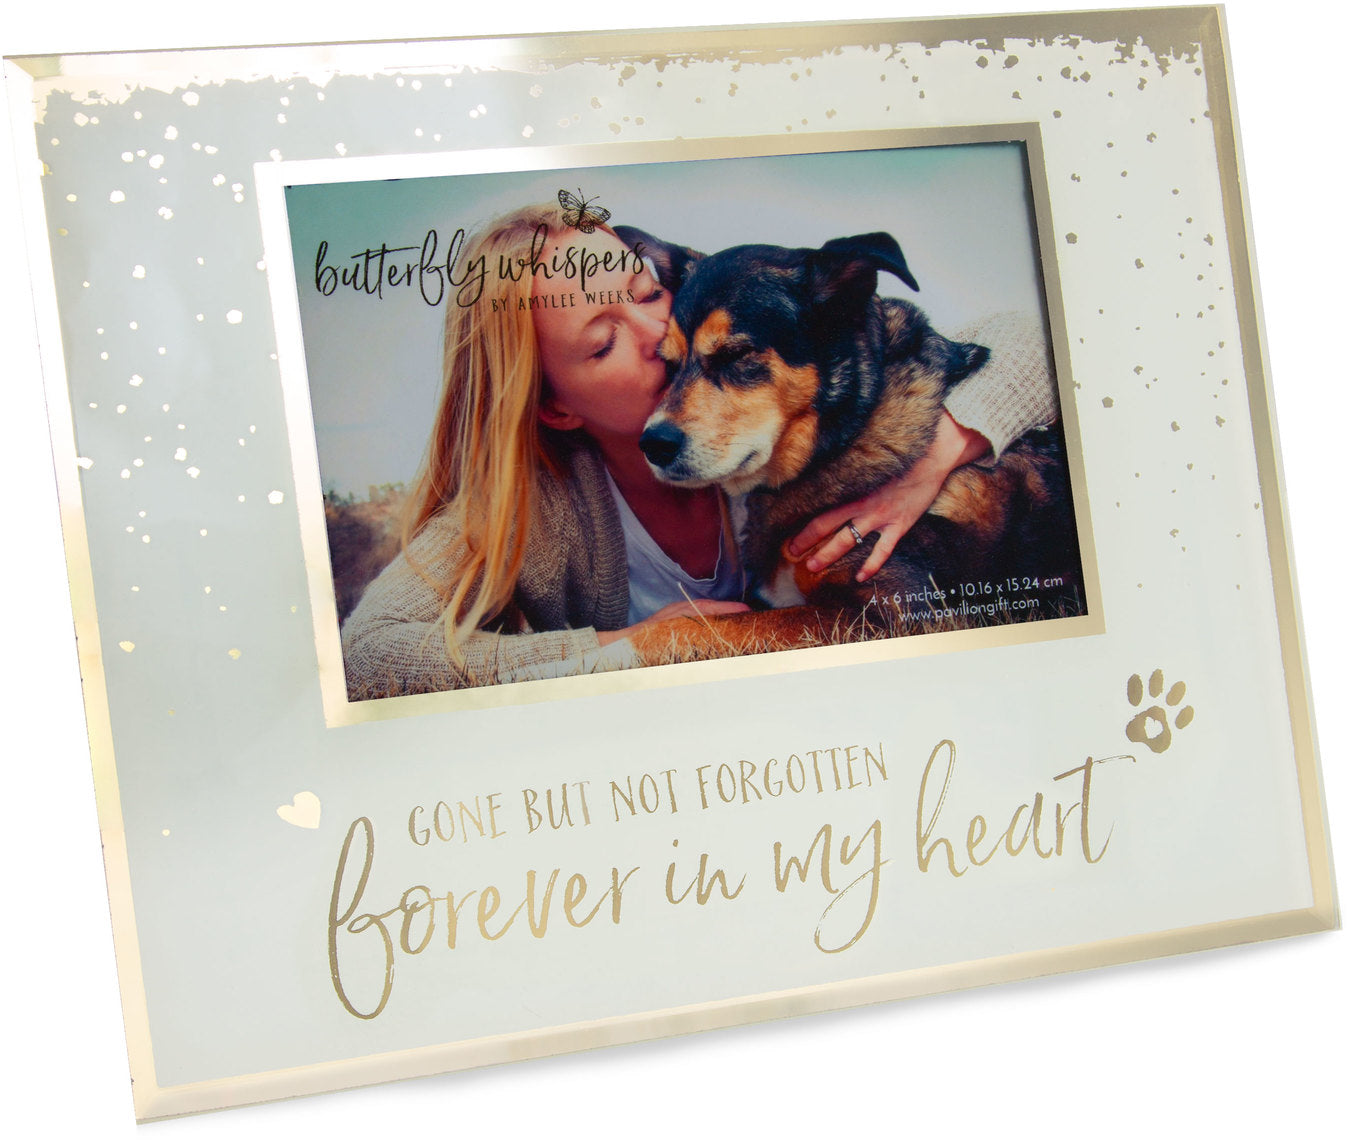 Butterfly Whispers - Forever in My Heart pet memorial frame